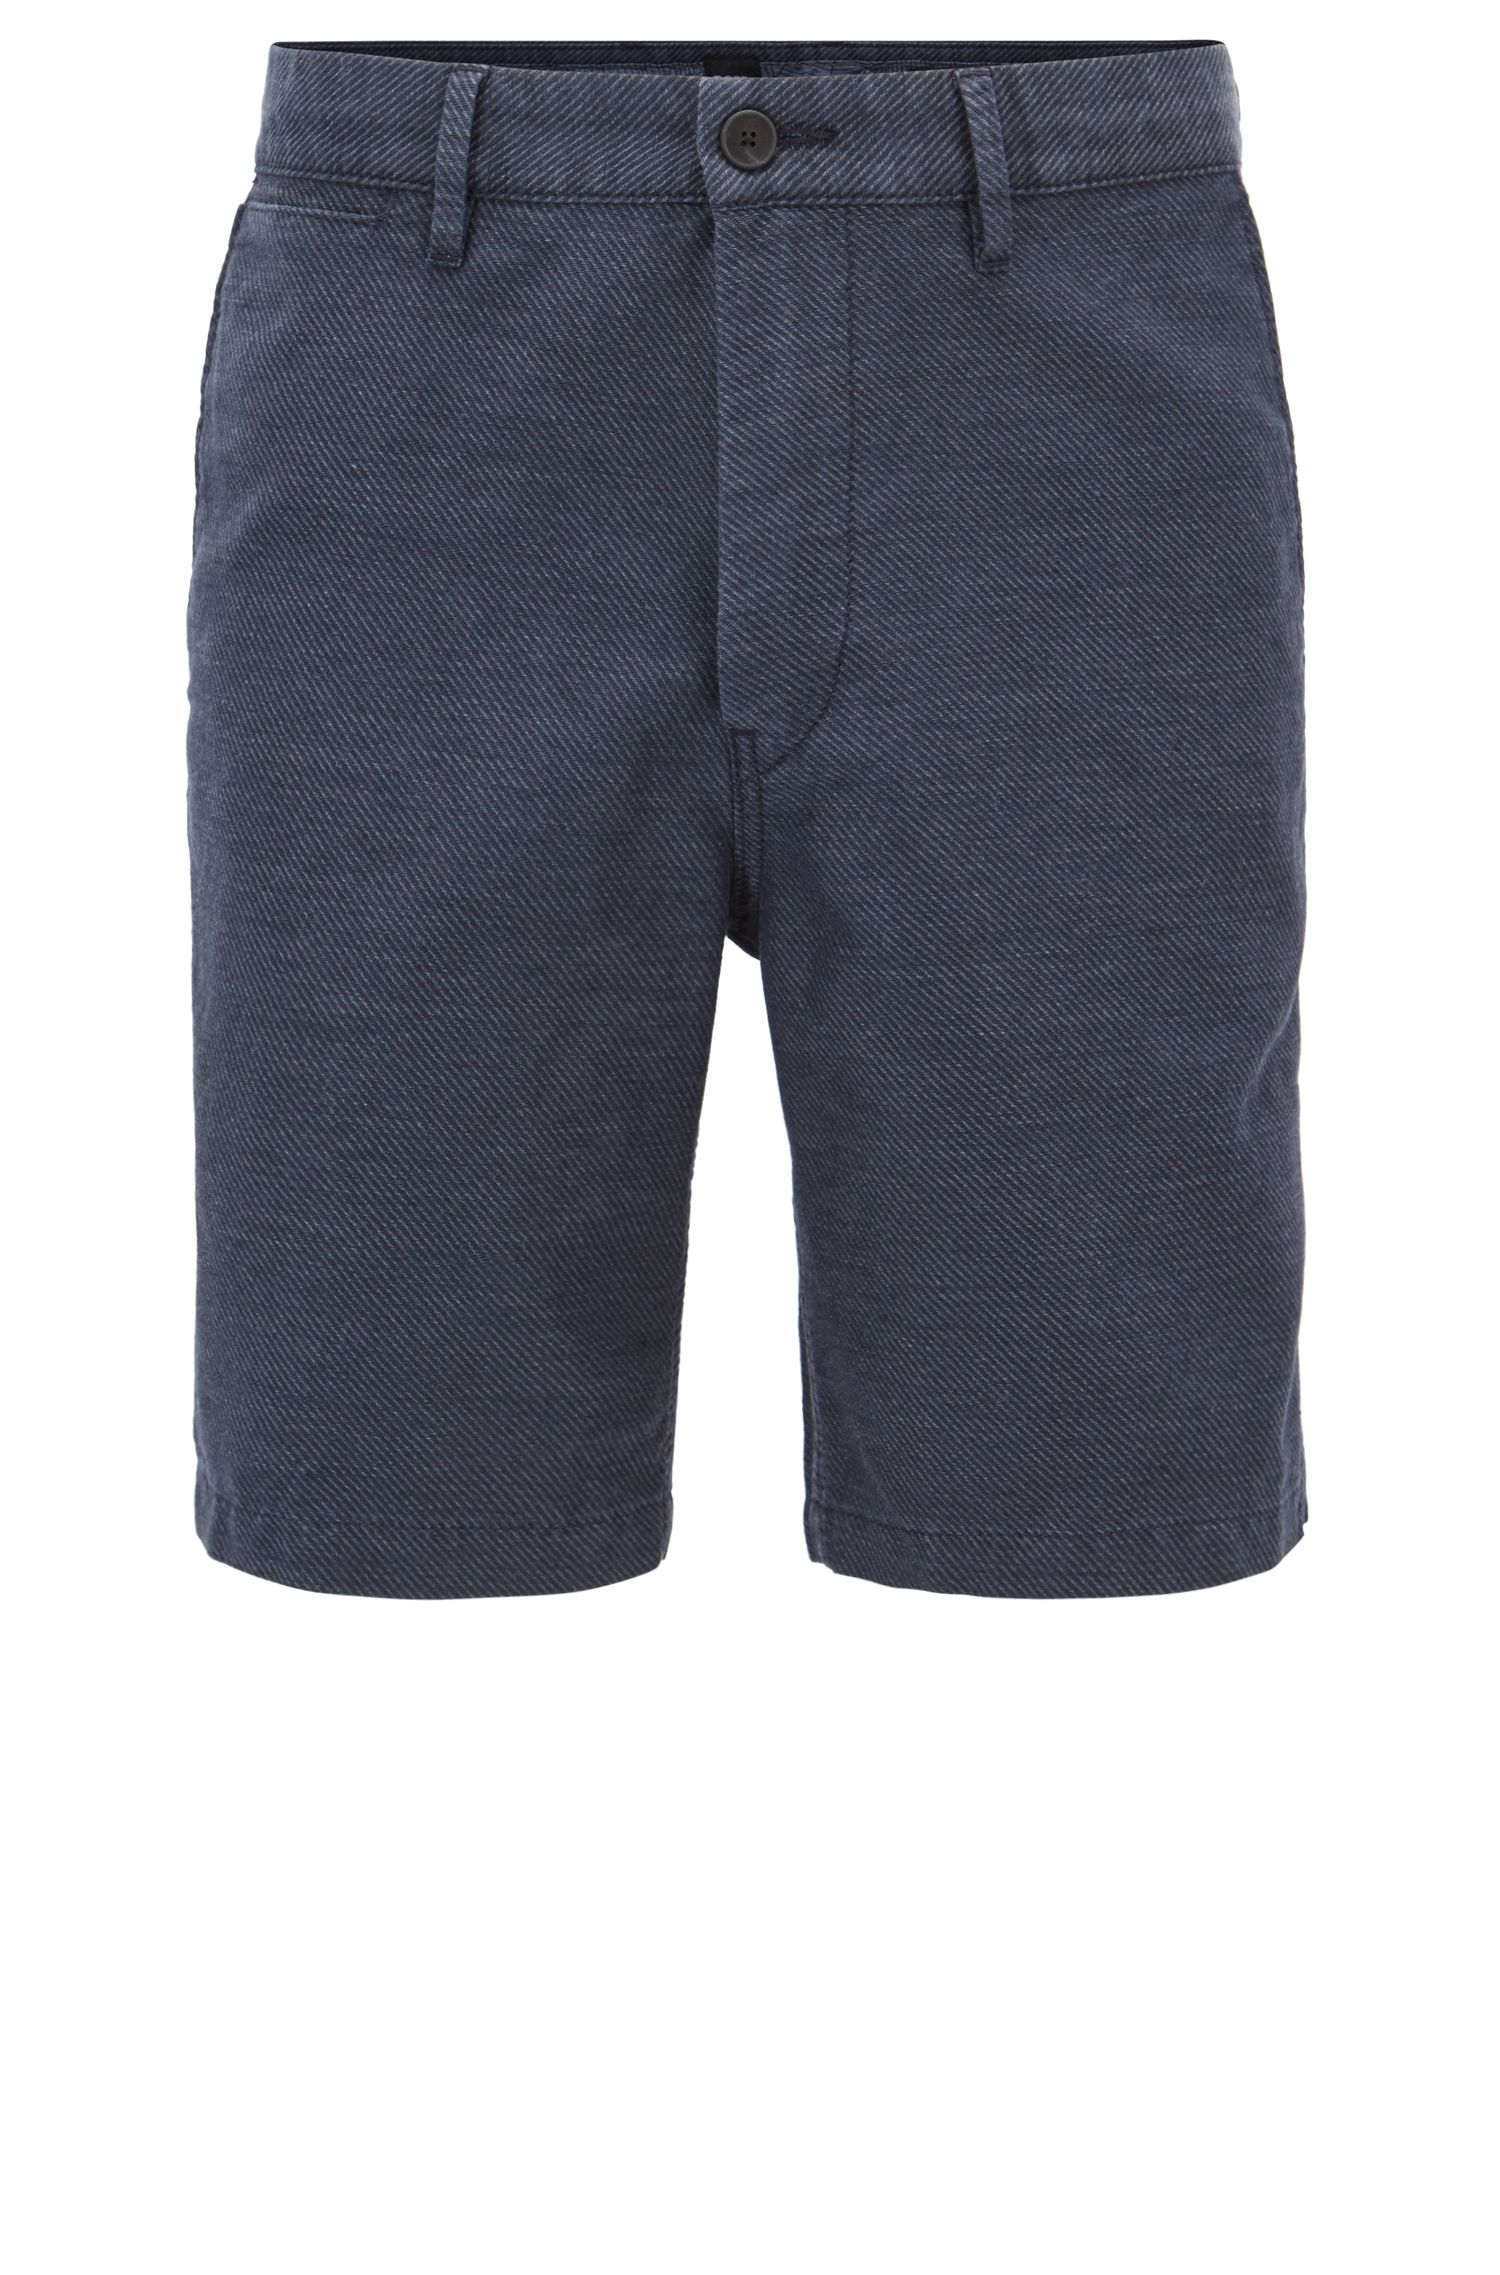 Cotton Linen Blend Short, Tapered Fit | Siman Shorts W